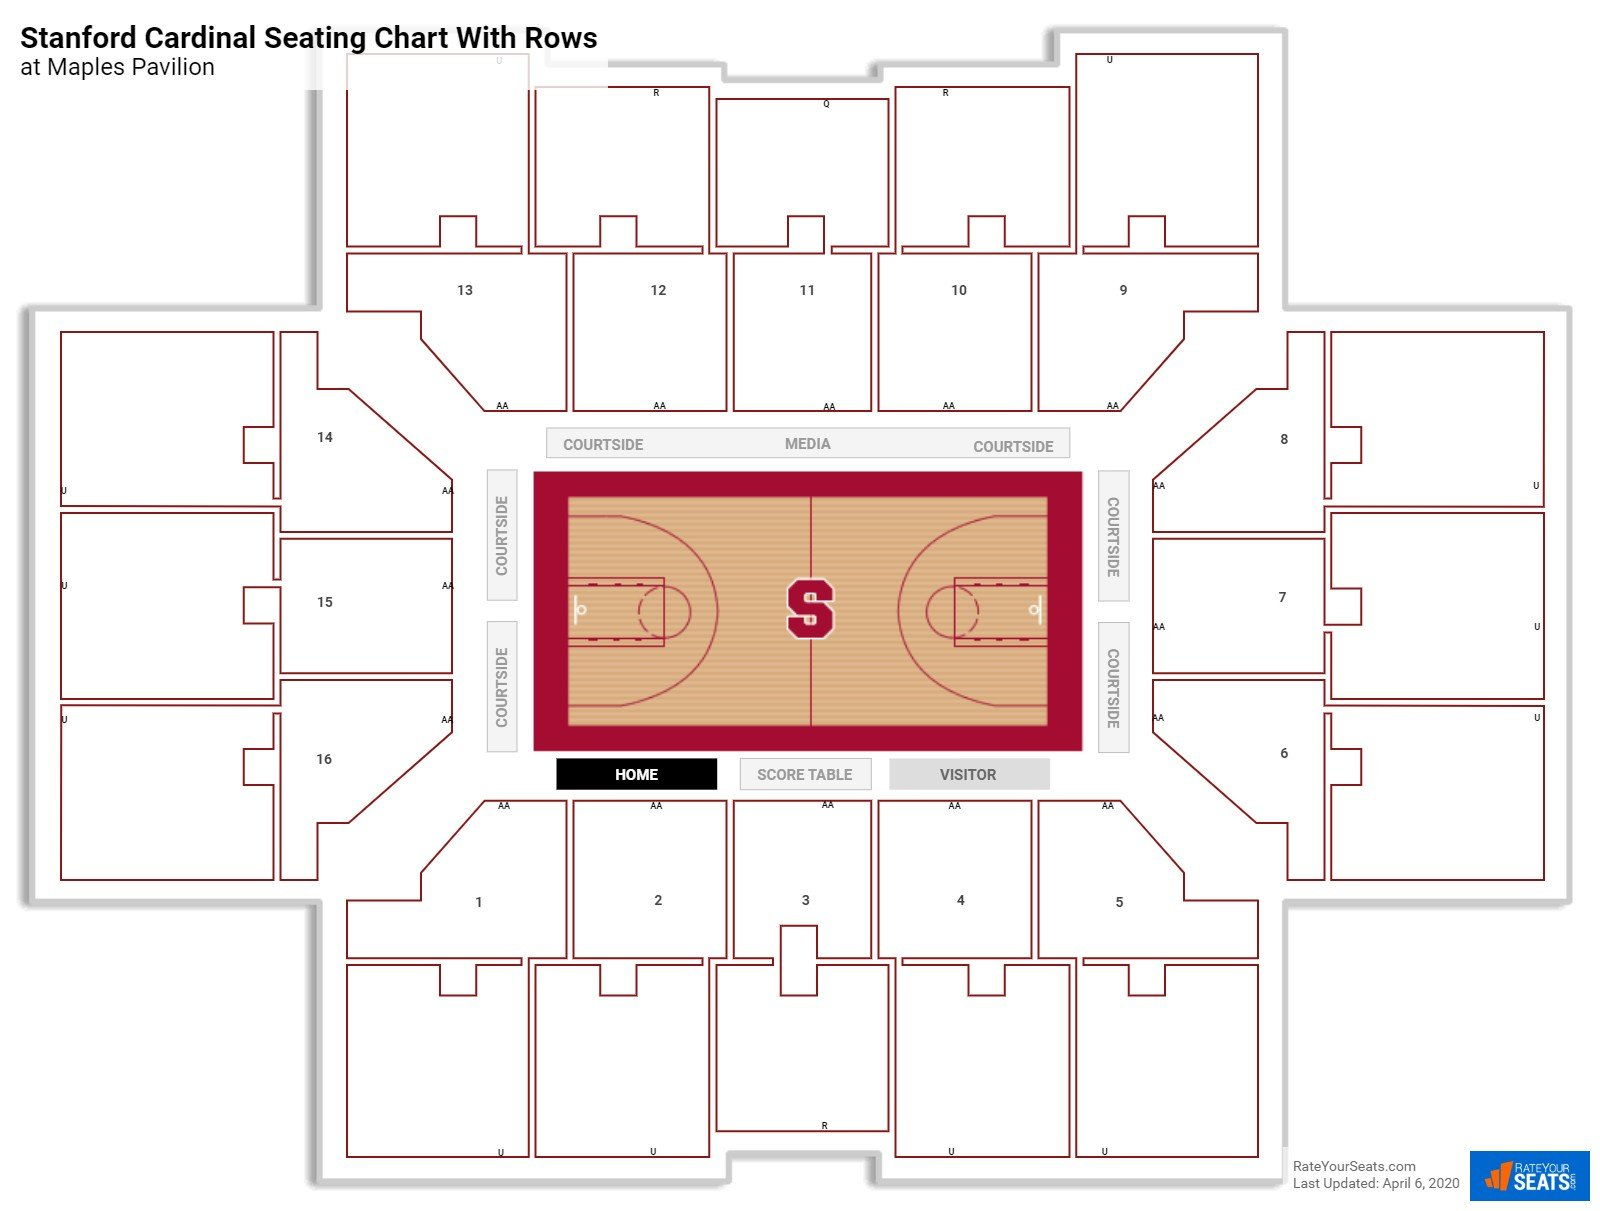 Maples Pavilion seating chart with rows